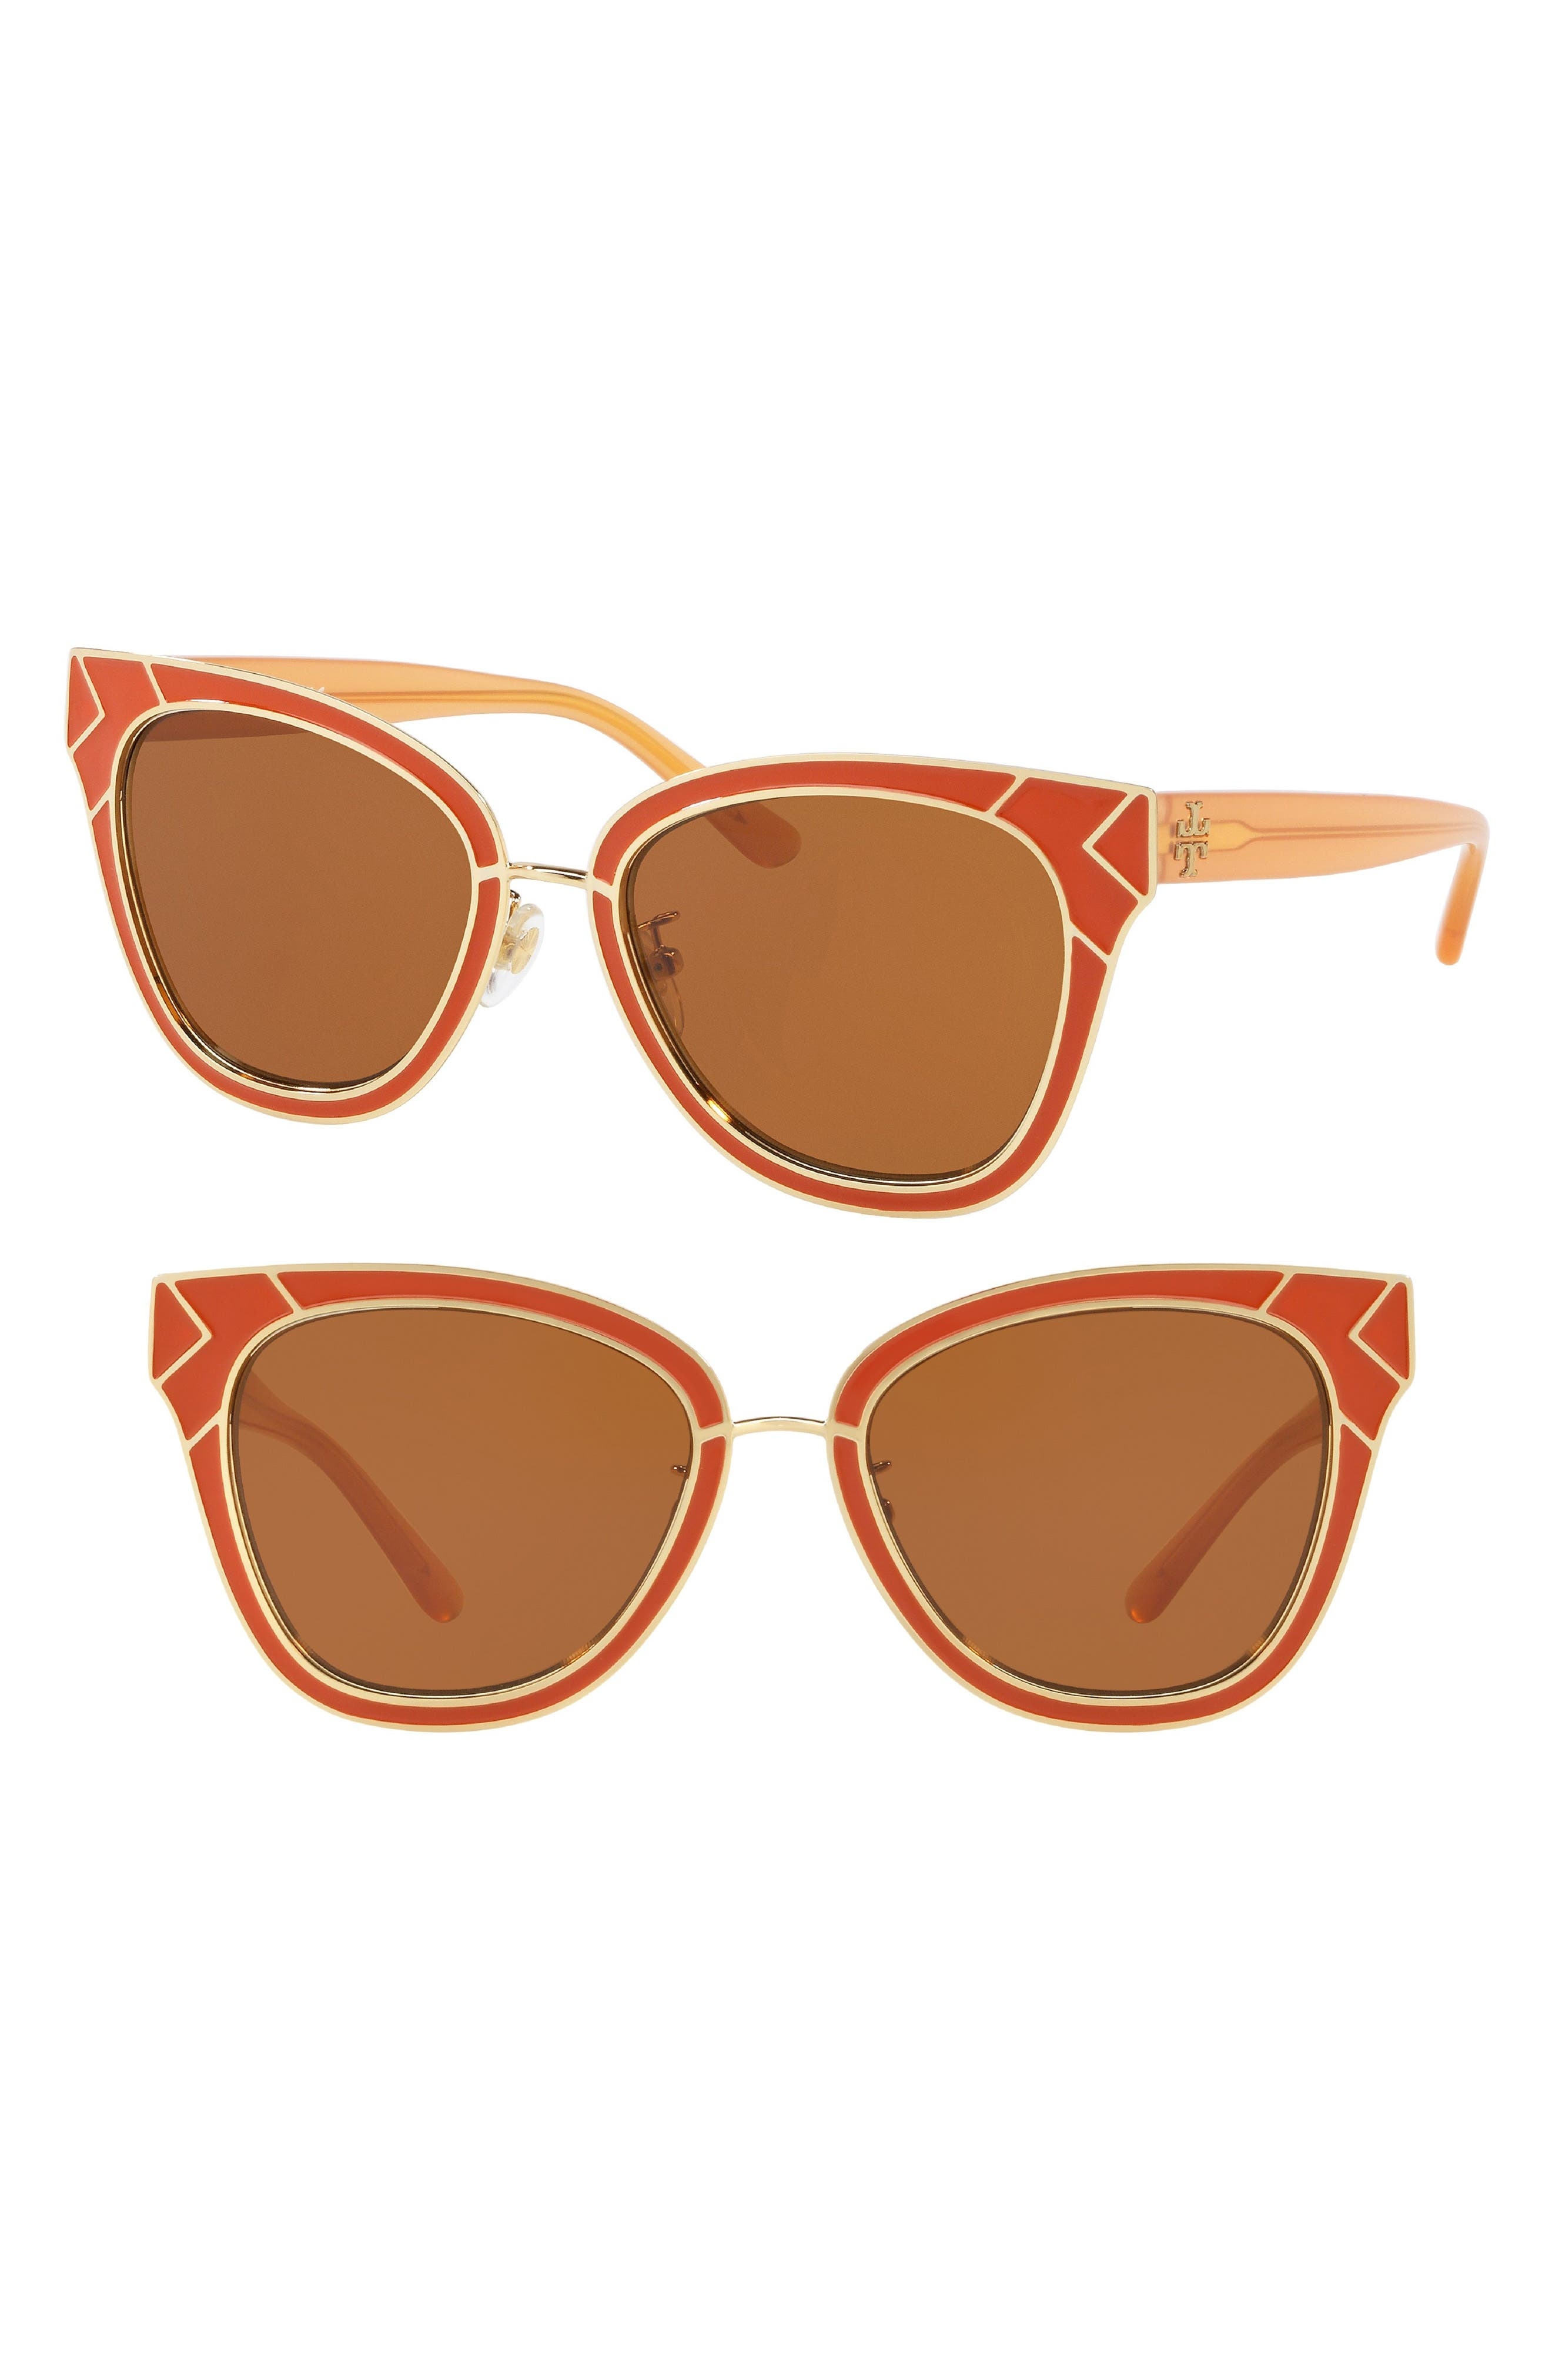 Sunglasses Accessories for Women | Nordstrom